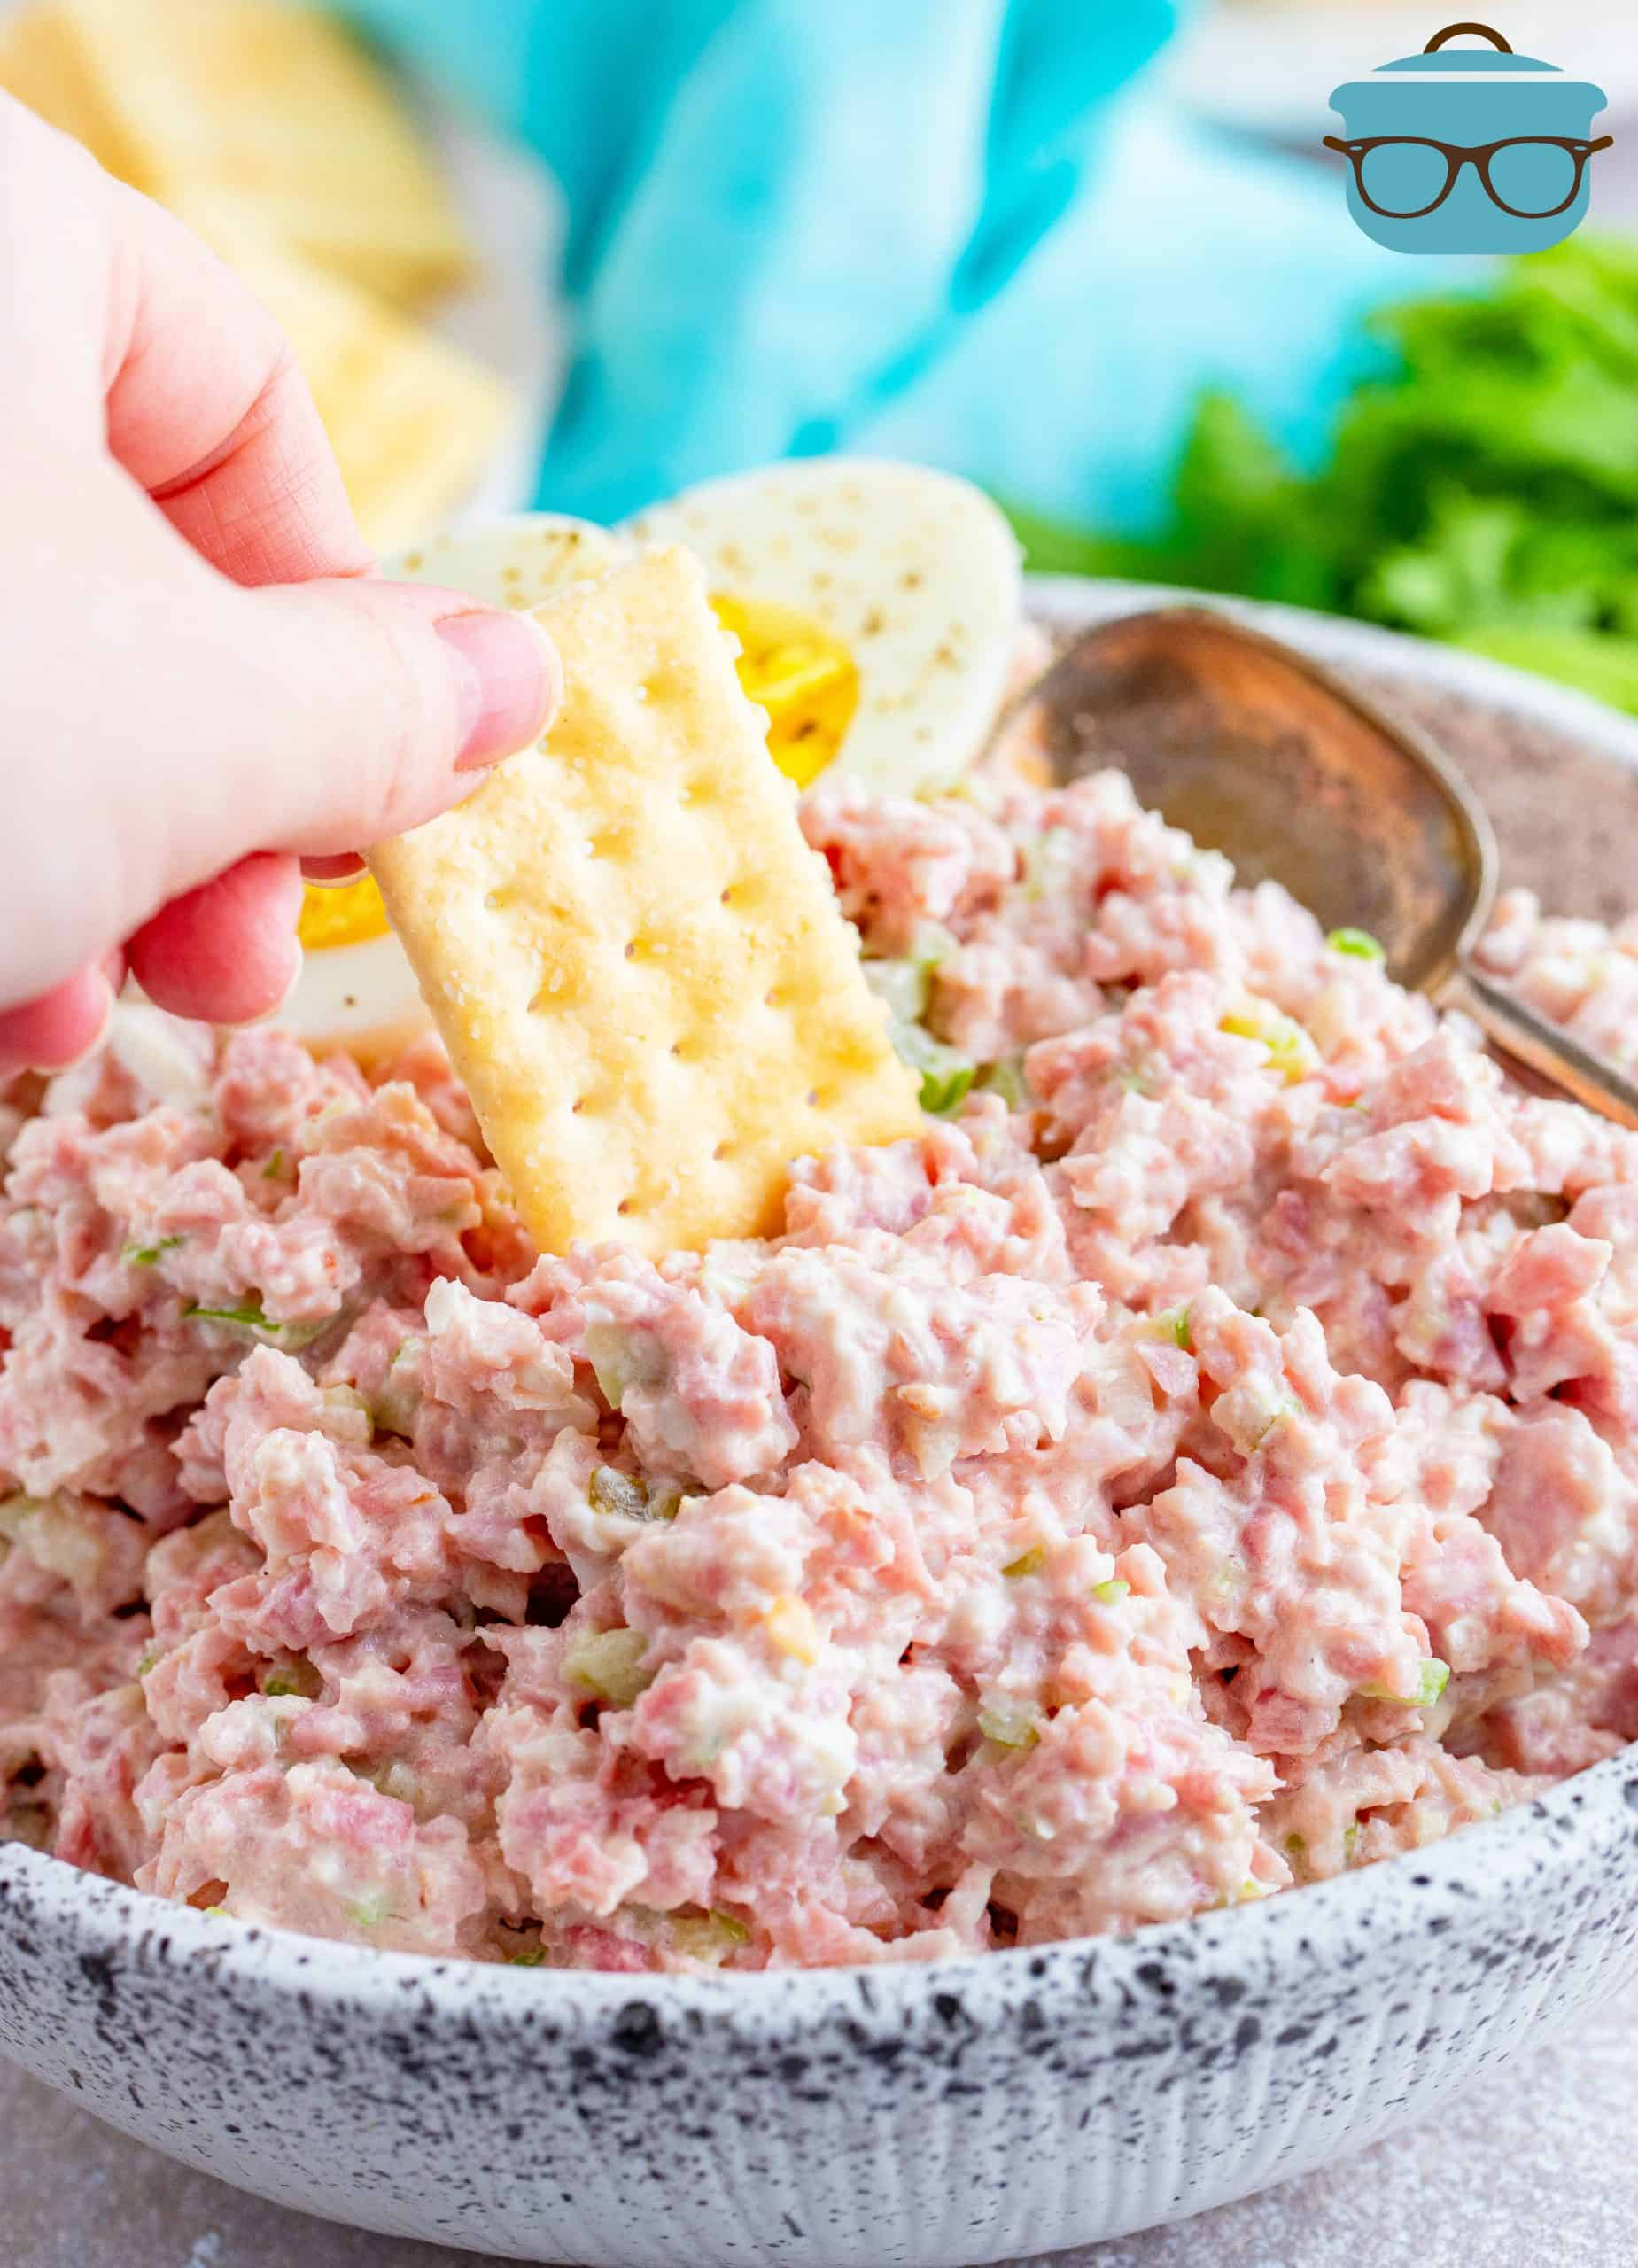 ham salad shown in a white speckled bowl with a hand dipping a club cracker into the ham salad